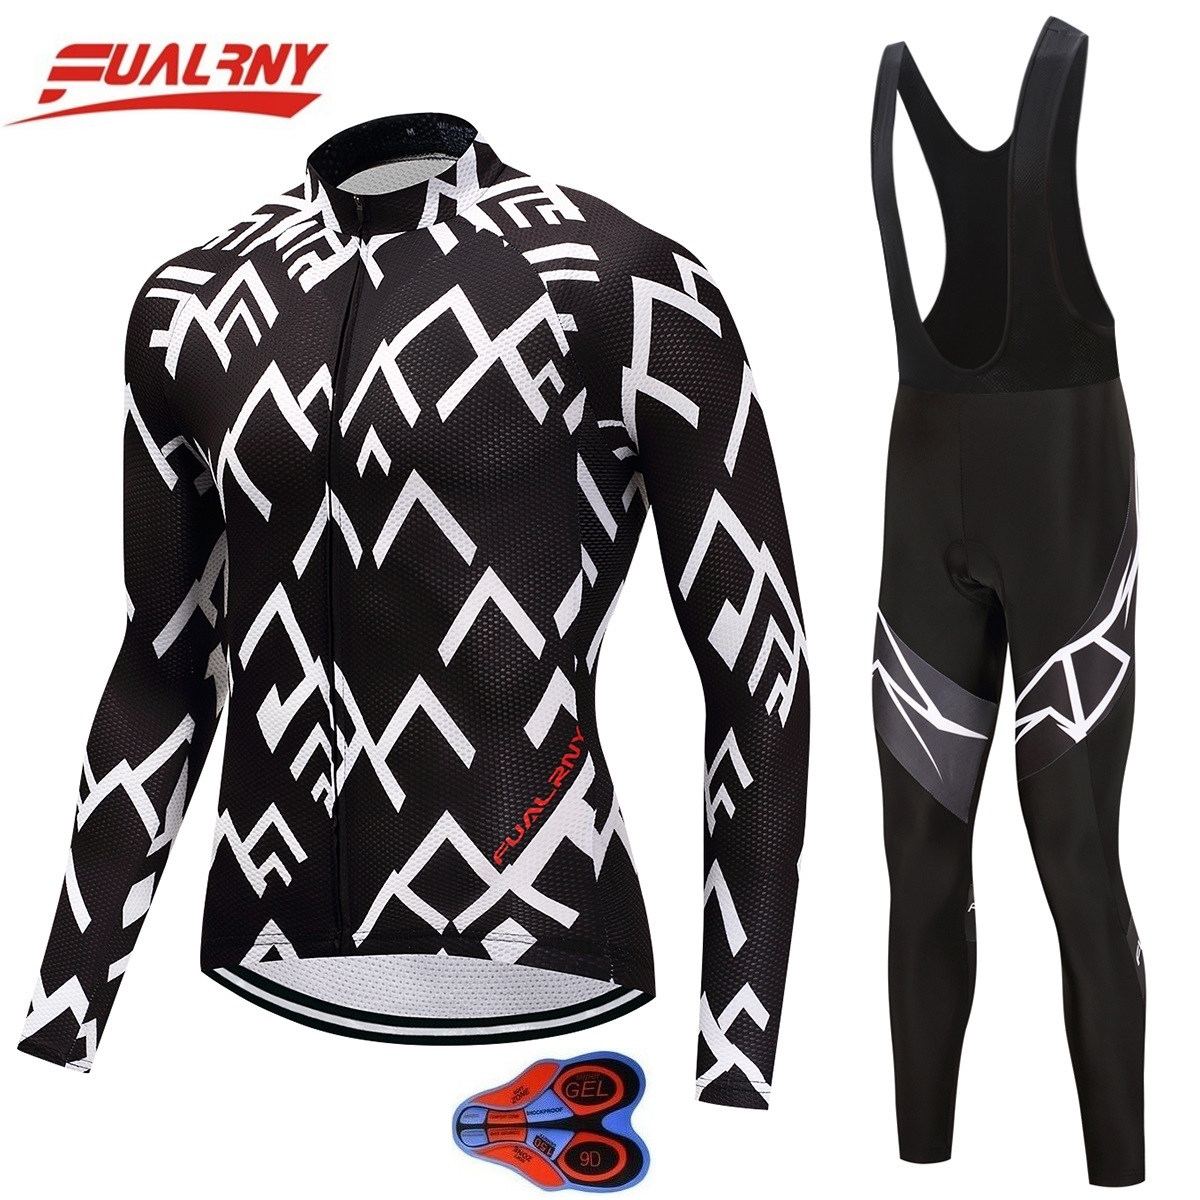 2019 Team FUALRNY Long sleeve Ropa Ciclismo Cycling Jersey sets Mountian Bicycle Clothing/MTB Bike Clothes For Man White stripe